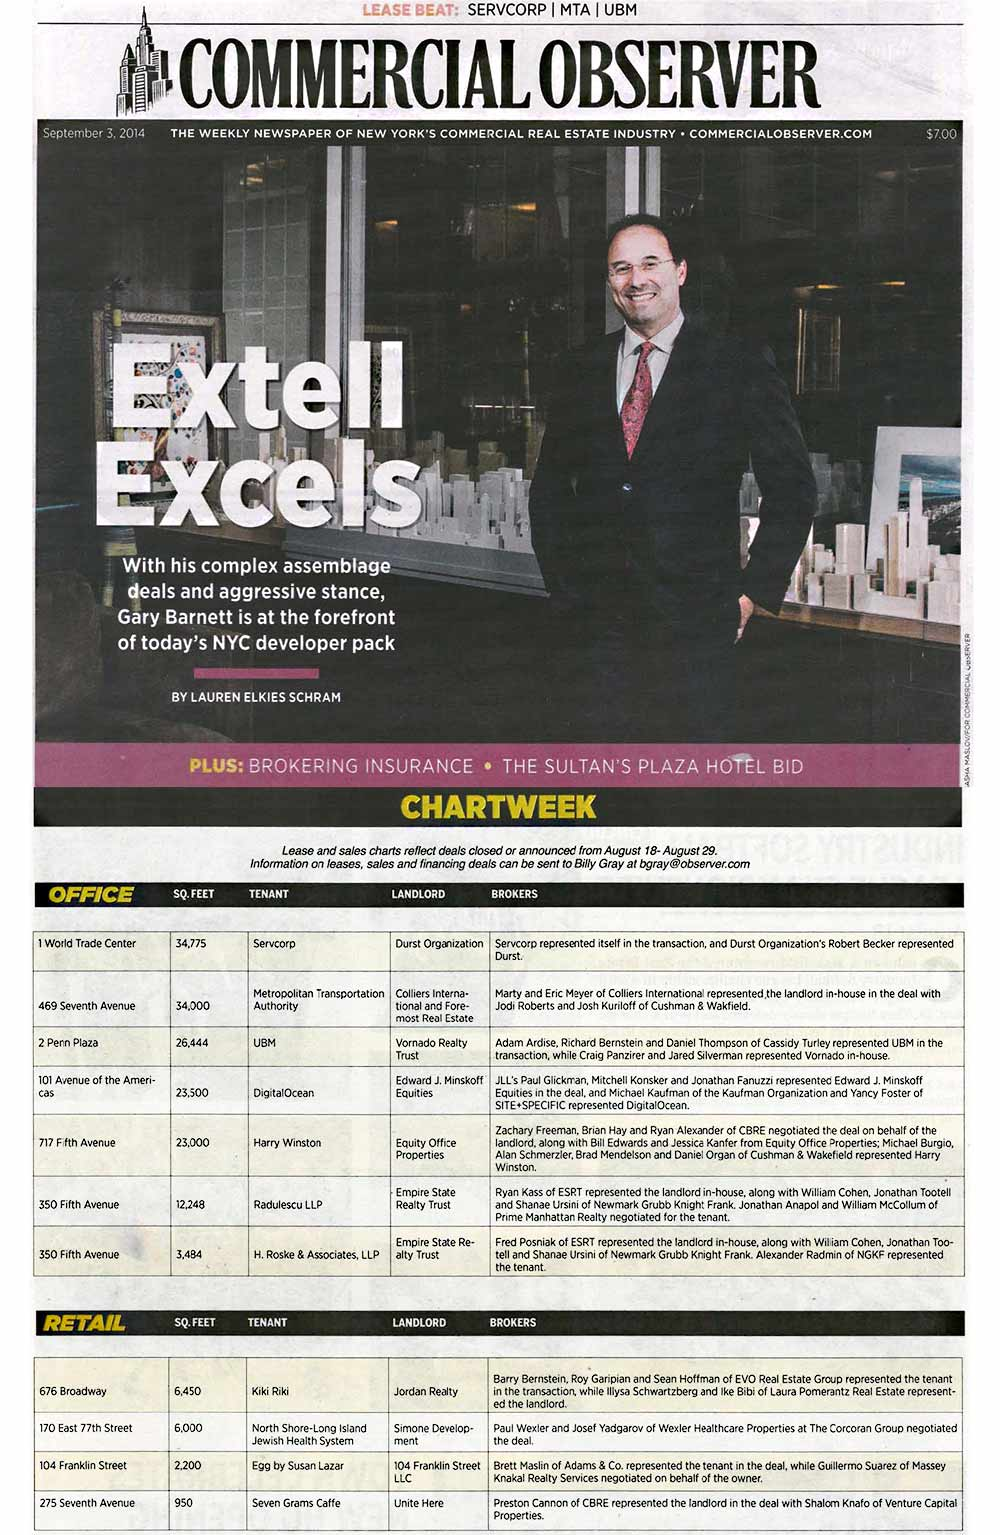 Commercial-Observer---Chartweek---9.3.14_Page_1